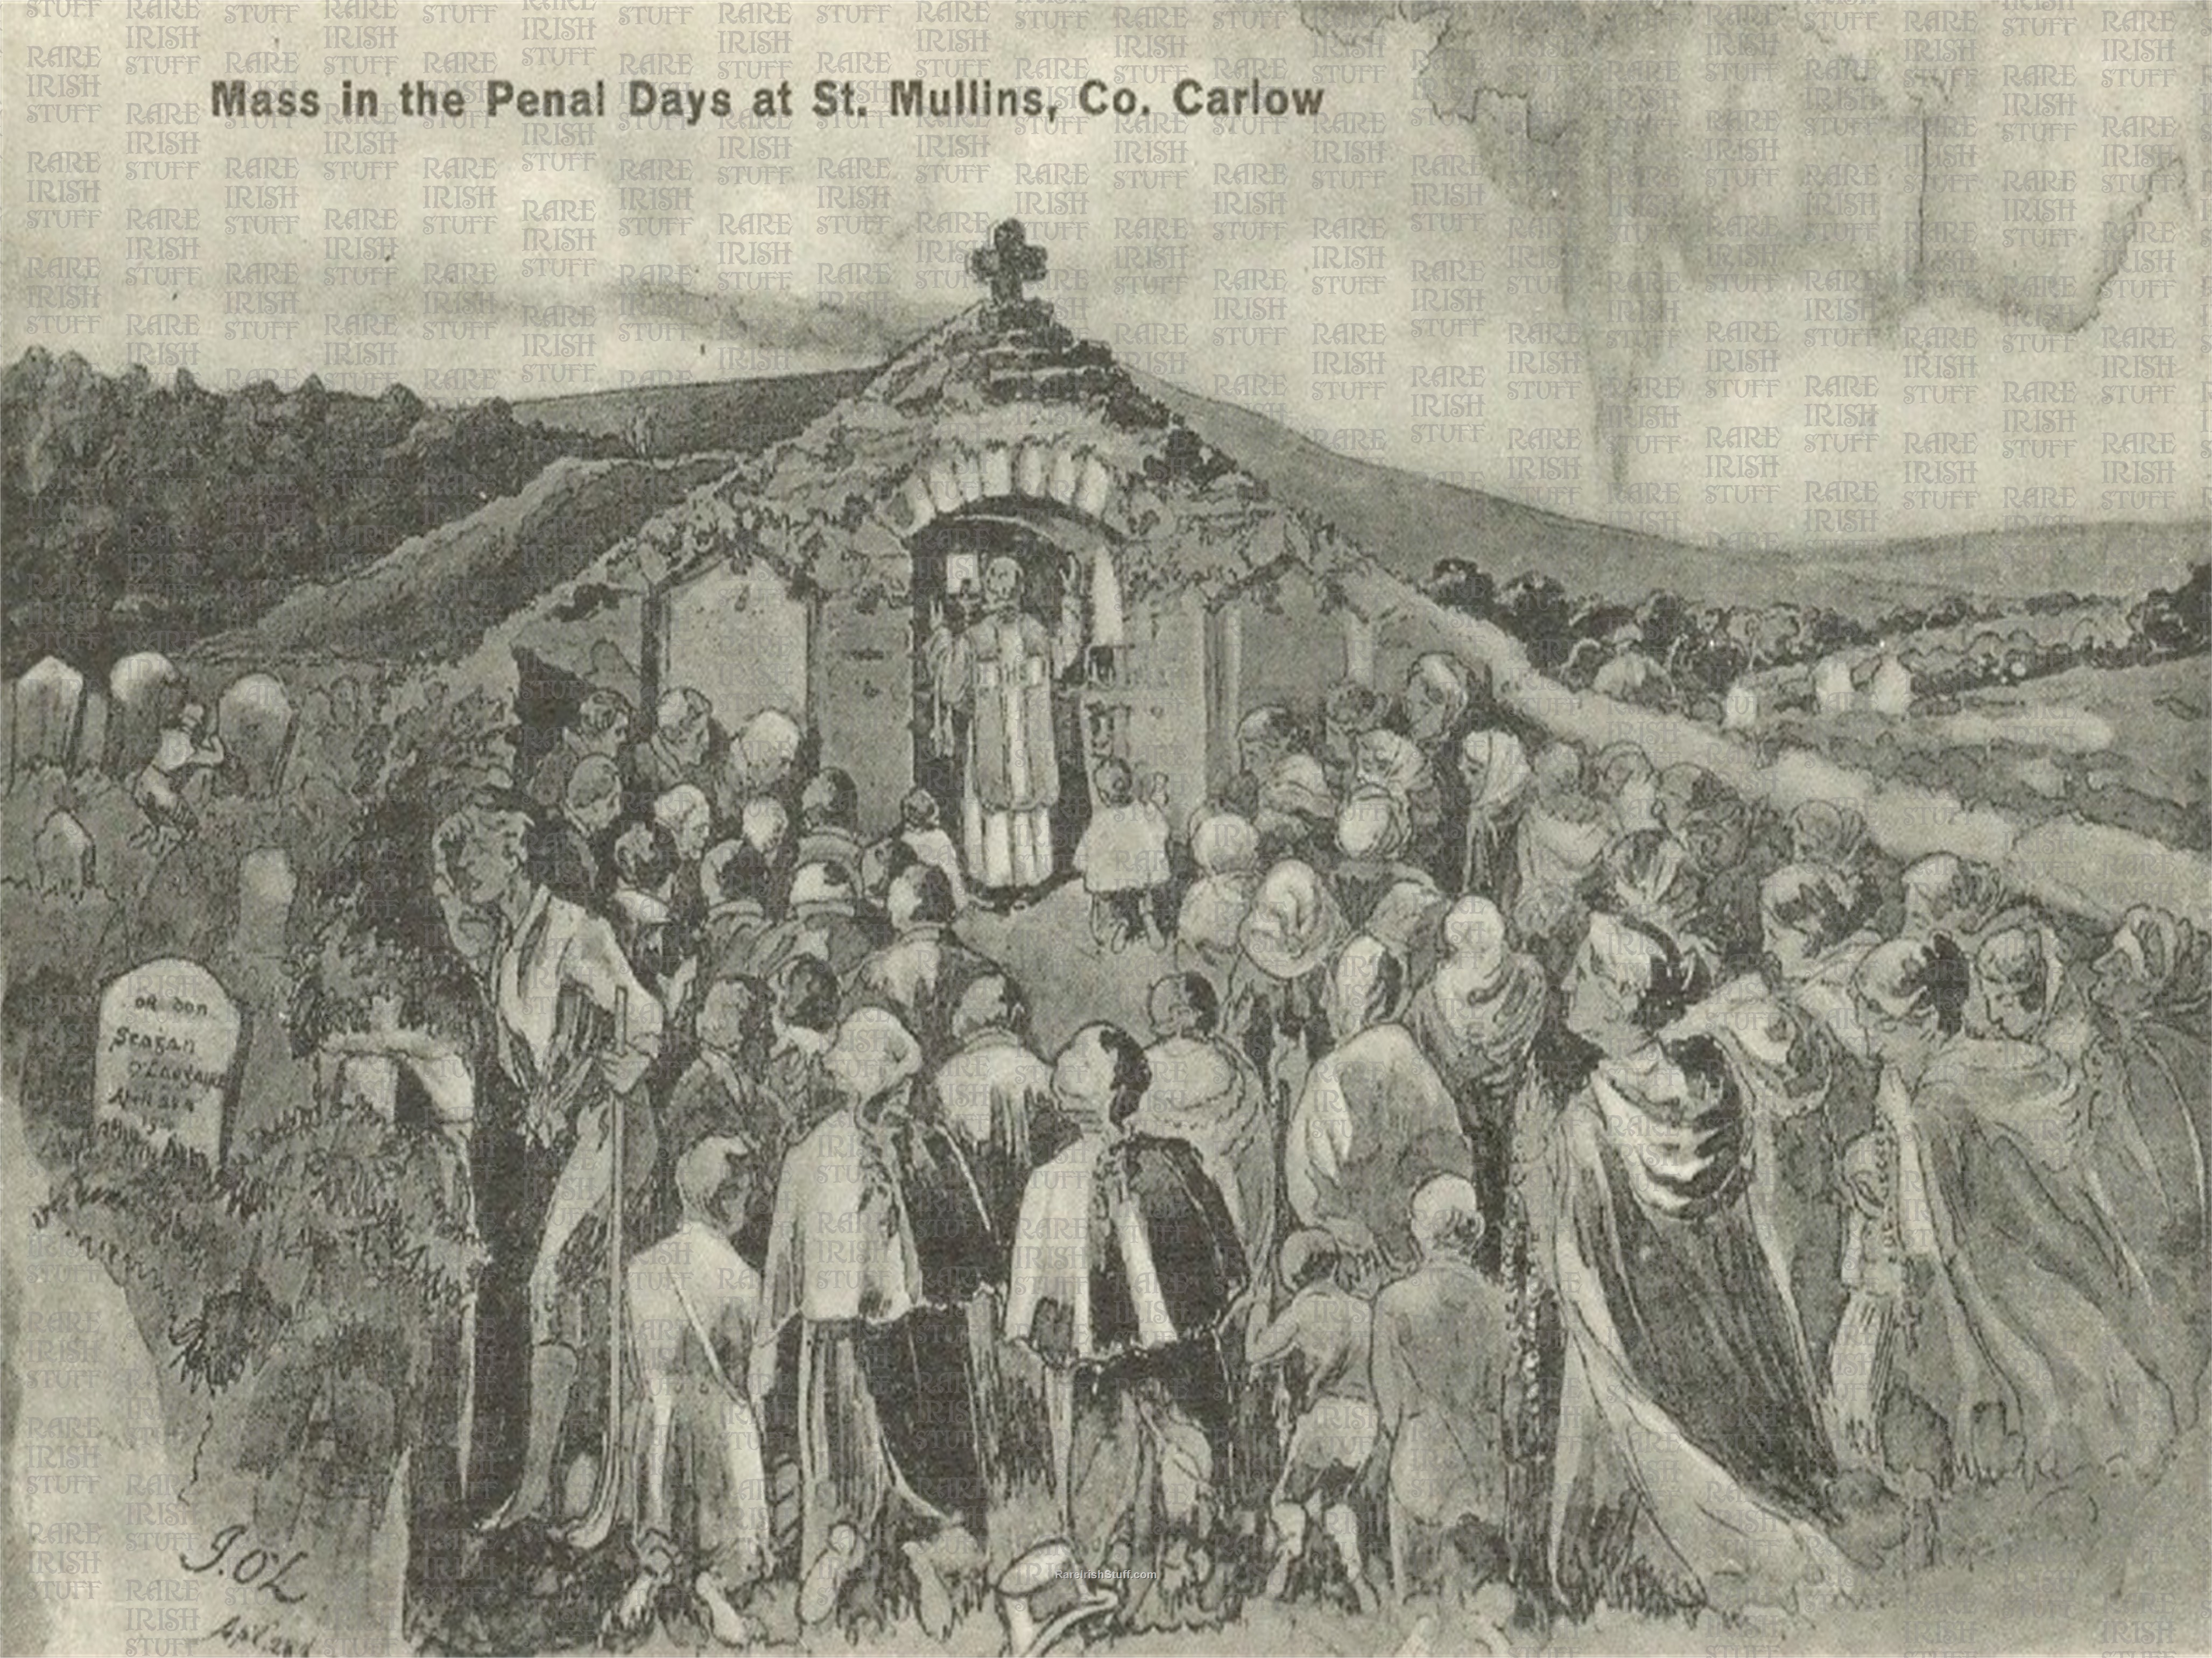 1  St  Mullins   Co.  Carlow   Ireland  Unknown  artist impression of mass during  Penal  Days around the time of the  Great  Irish  Famine  Thumbnail0